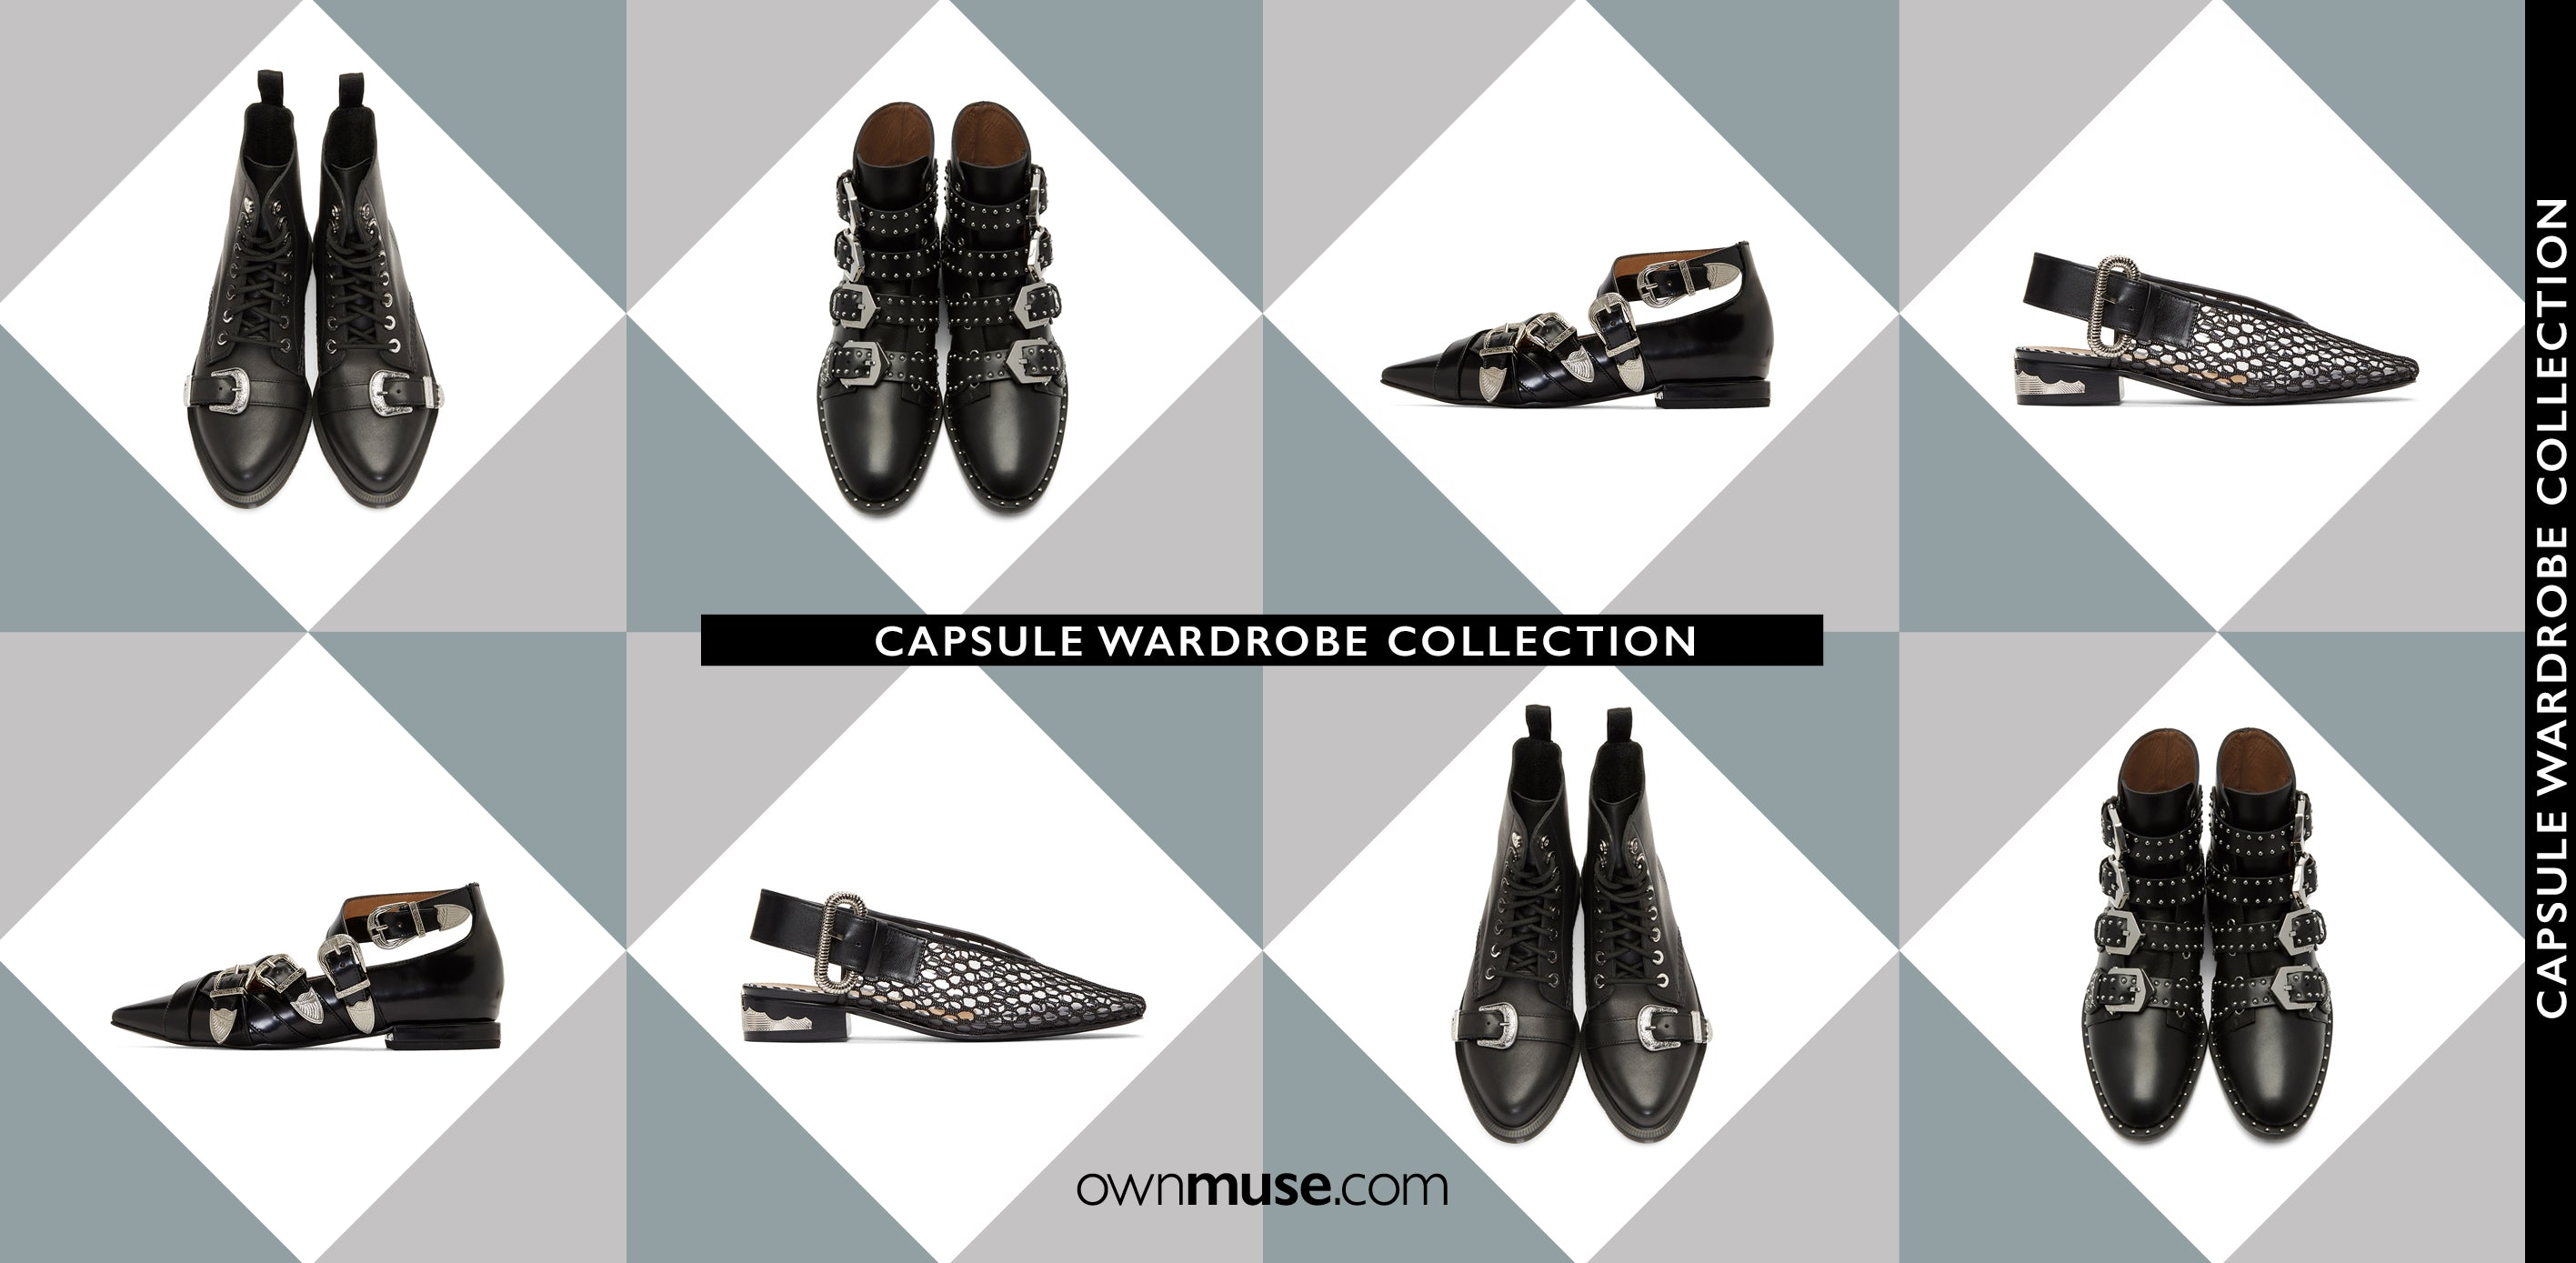 Capsule wardrobe collection black leather shoes